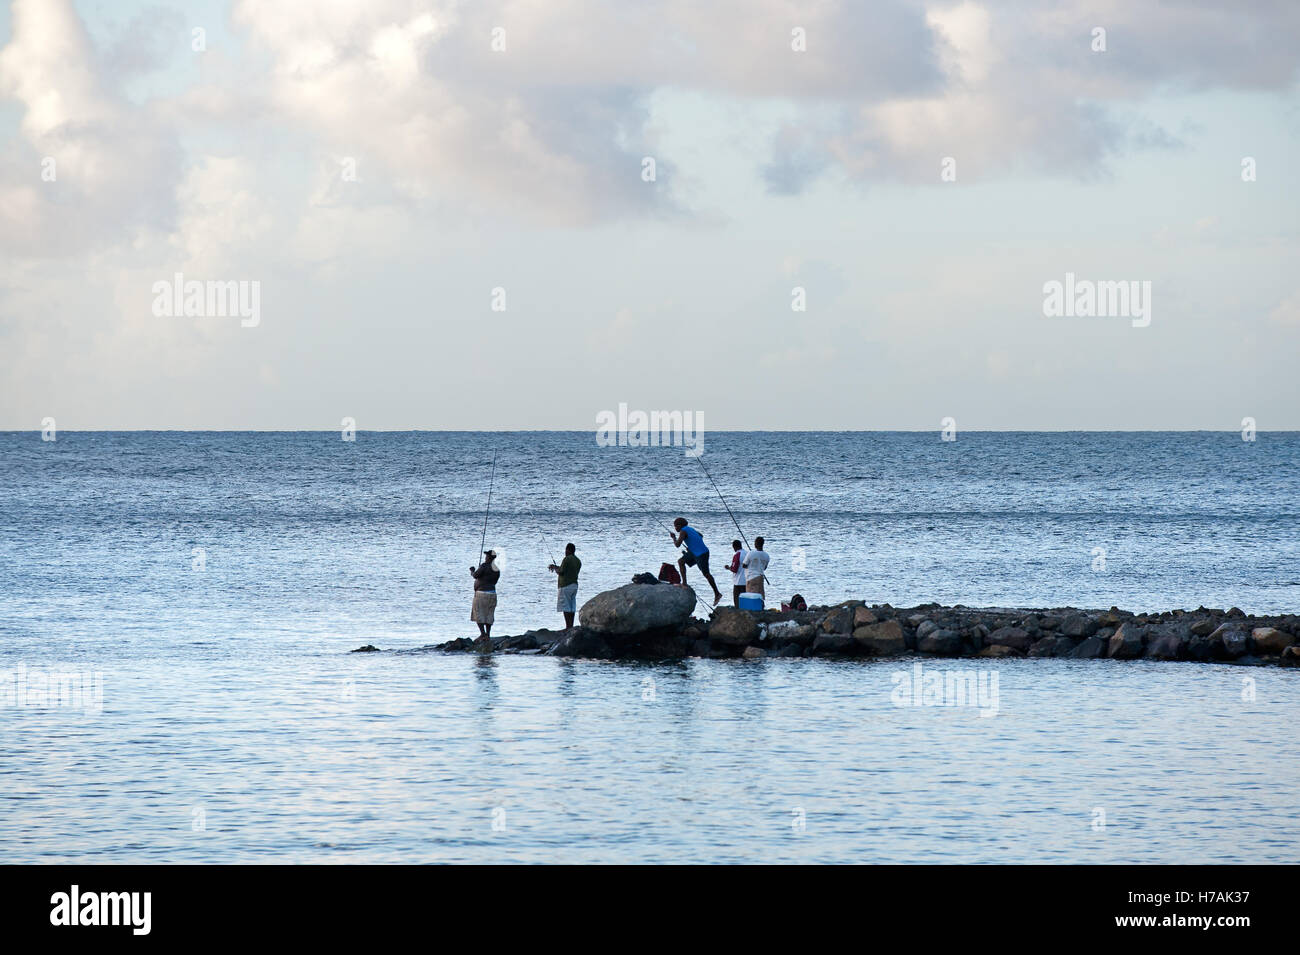 Fishermen stand with rods on promontory in St Lucia with view of horizon to sea. - Stock Image